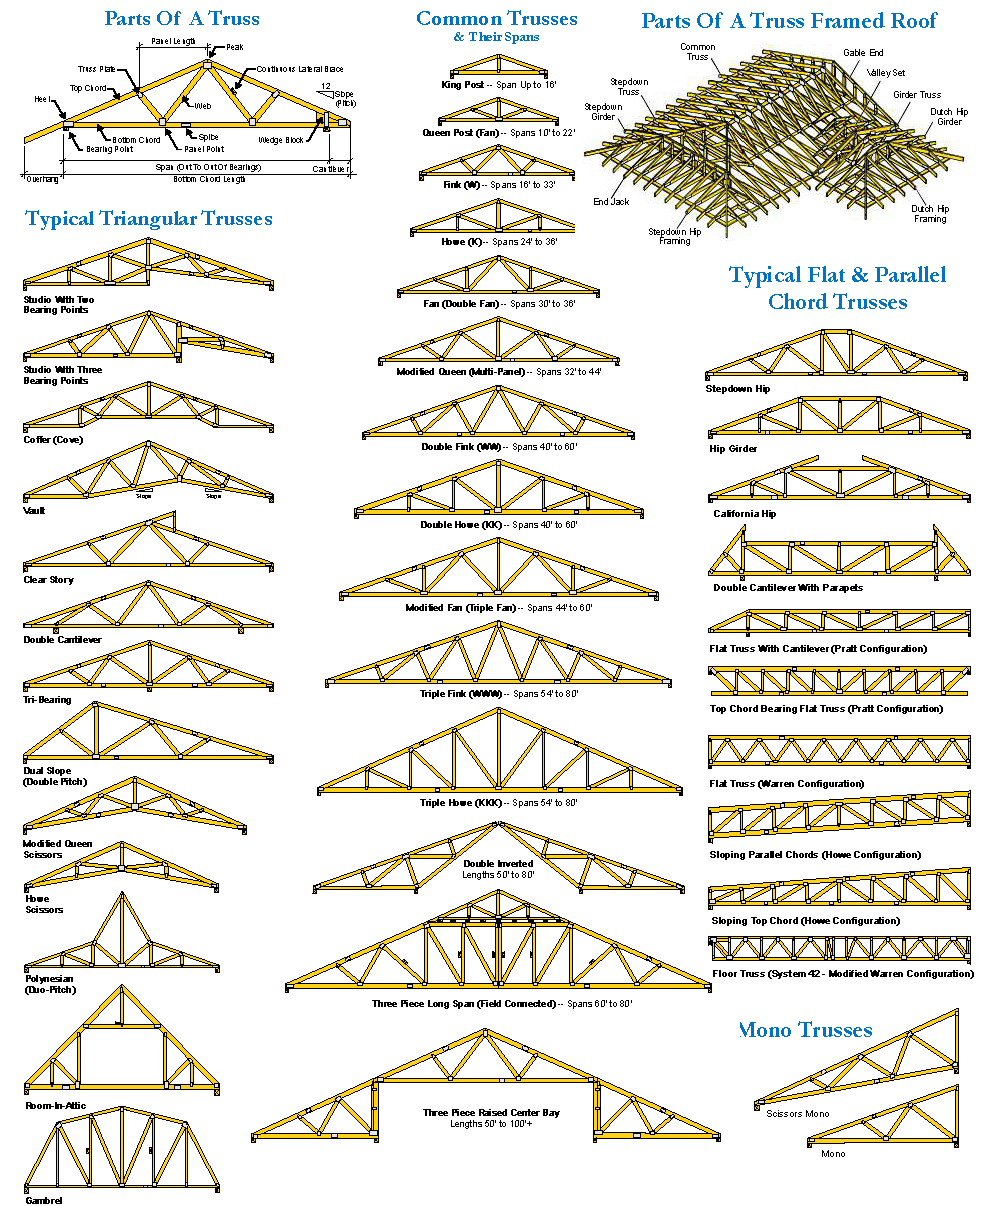 Pin By Pierre Michel Amadry On Carport In 2020 Roof Truss Design Roof Trusses Roof Structure